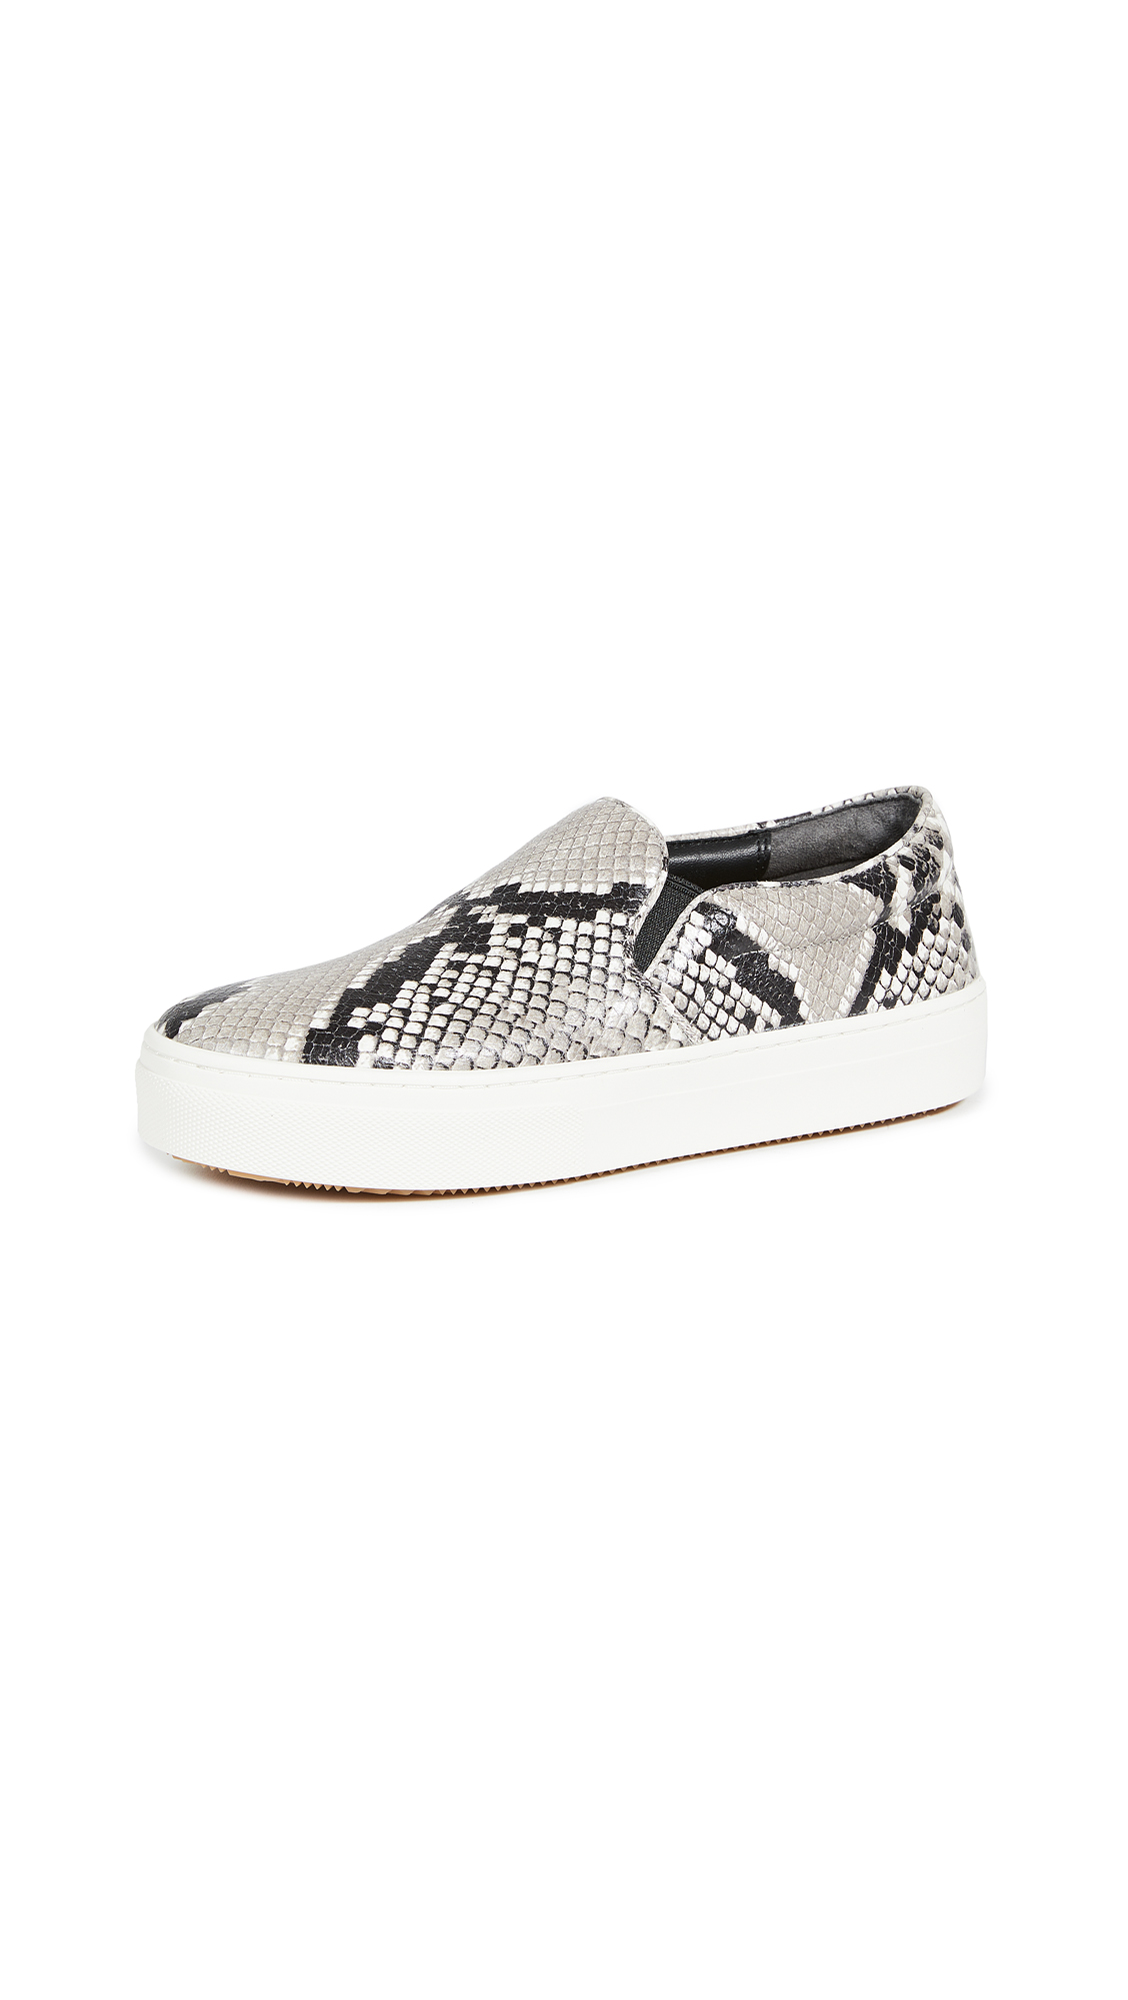 Tory Burch Slip On Sneakers